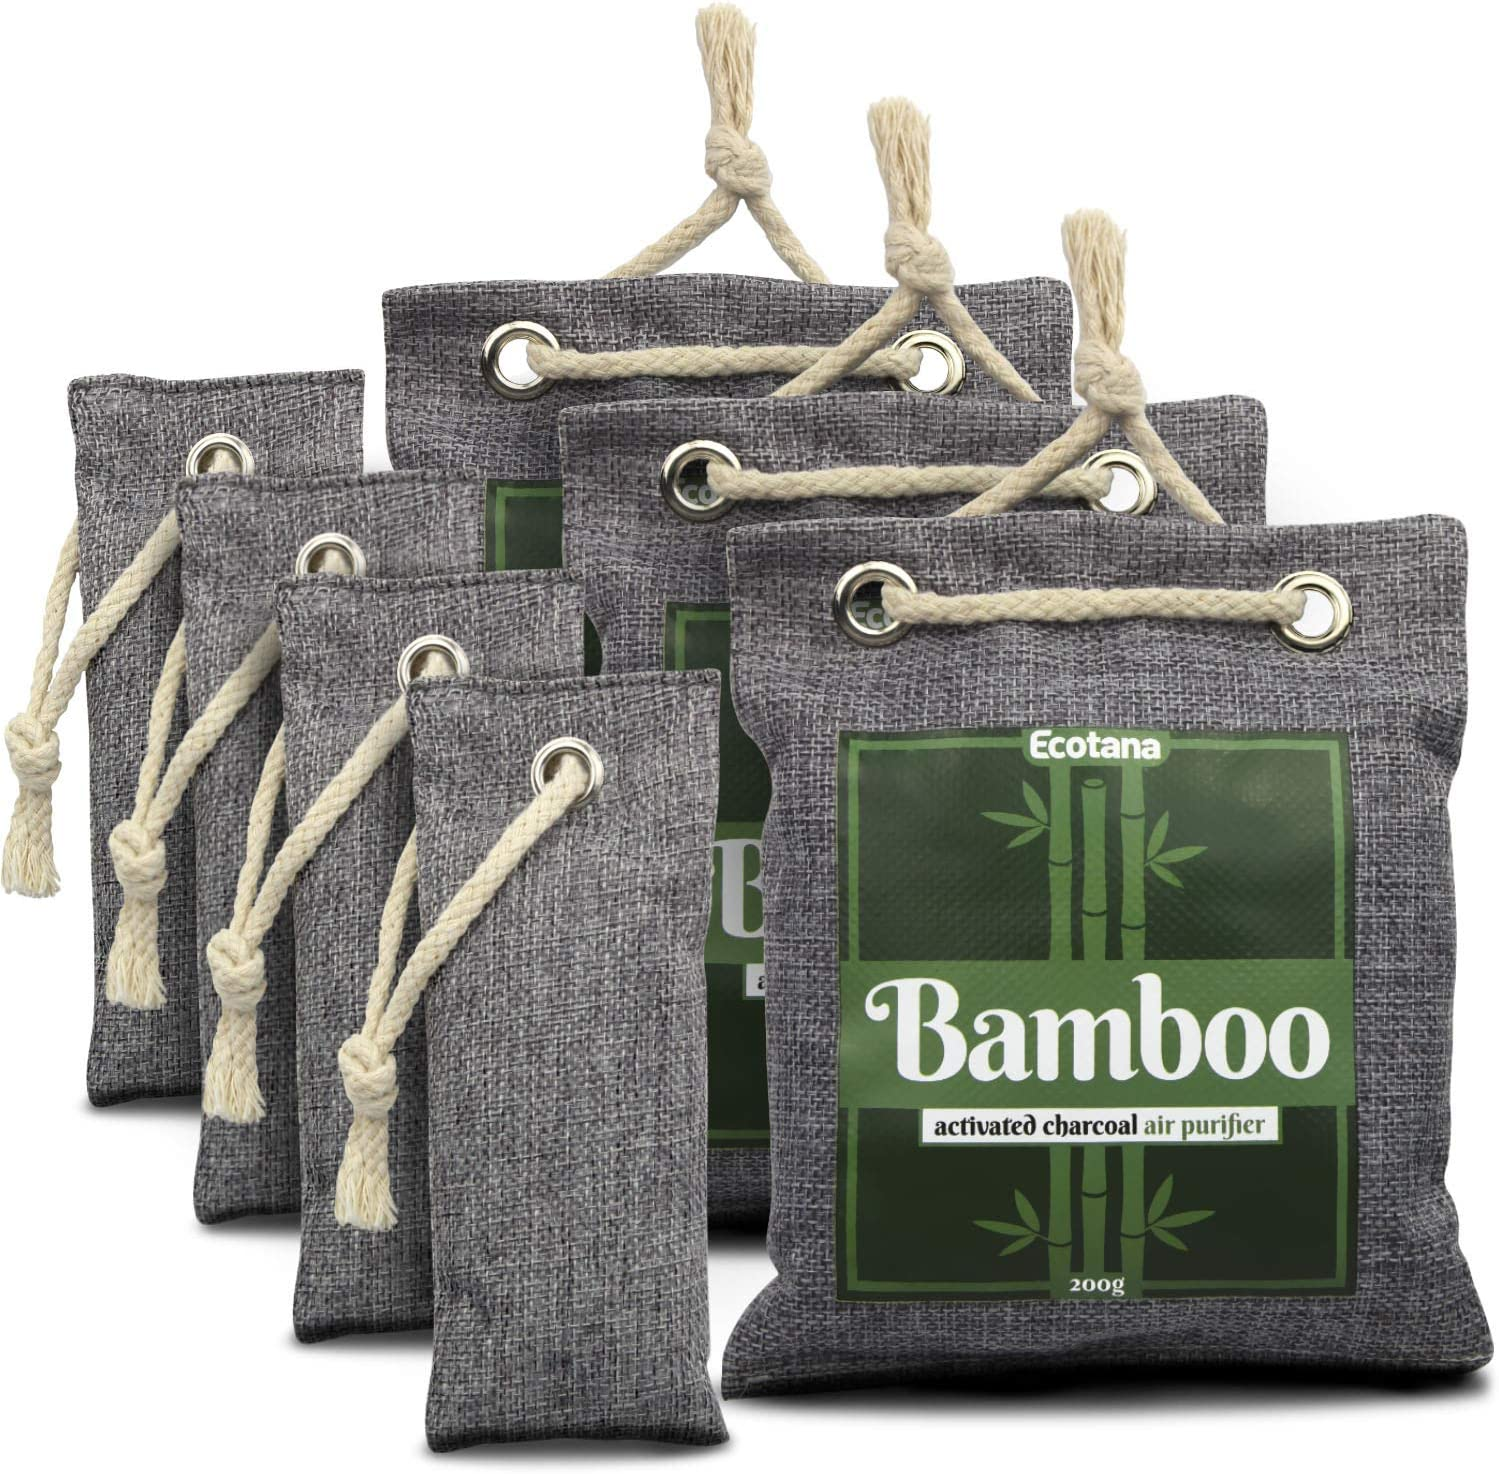 Activated Bamboo Charcoal Air Purifying Bags 7-Pack - All Natural, Non-Toxic Odor Absorber and Deodorizer for Fridge, Shoes, Bathroom, Closet, Car, Basement, RV (3 x 200g, 4 x 50g) (Kid & Pet Friendly) by Ecotana